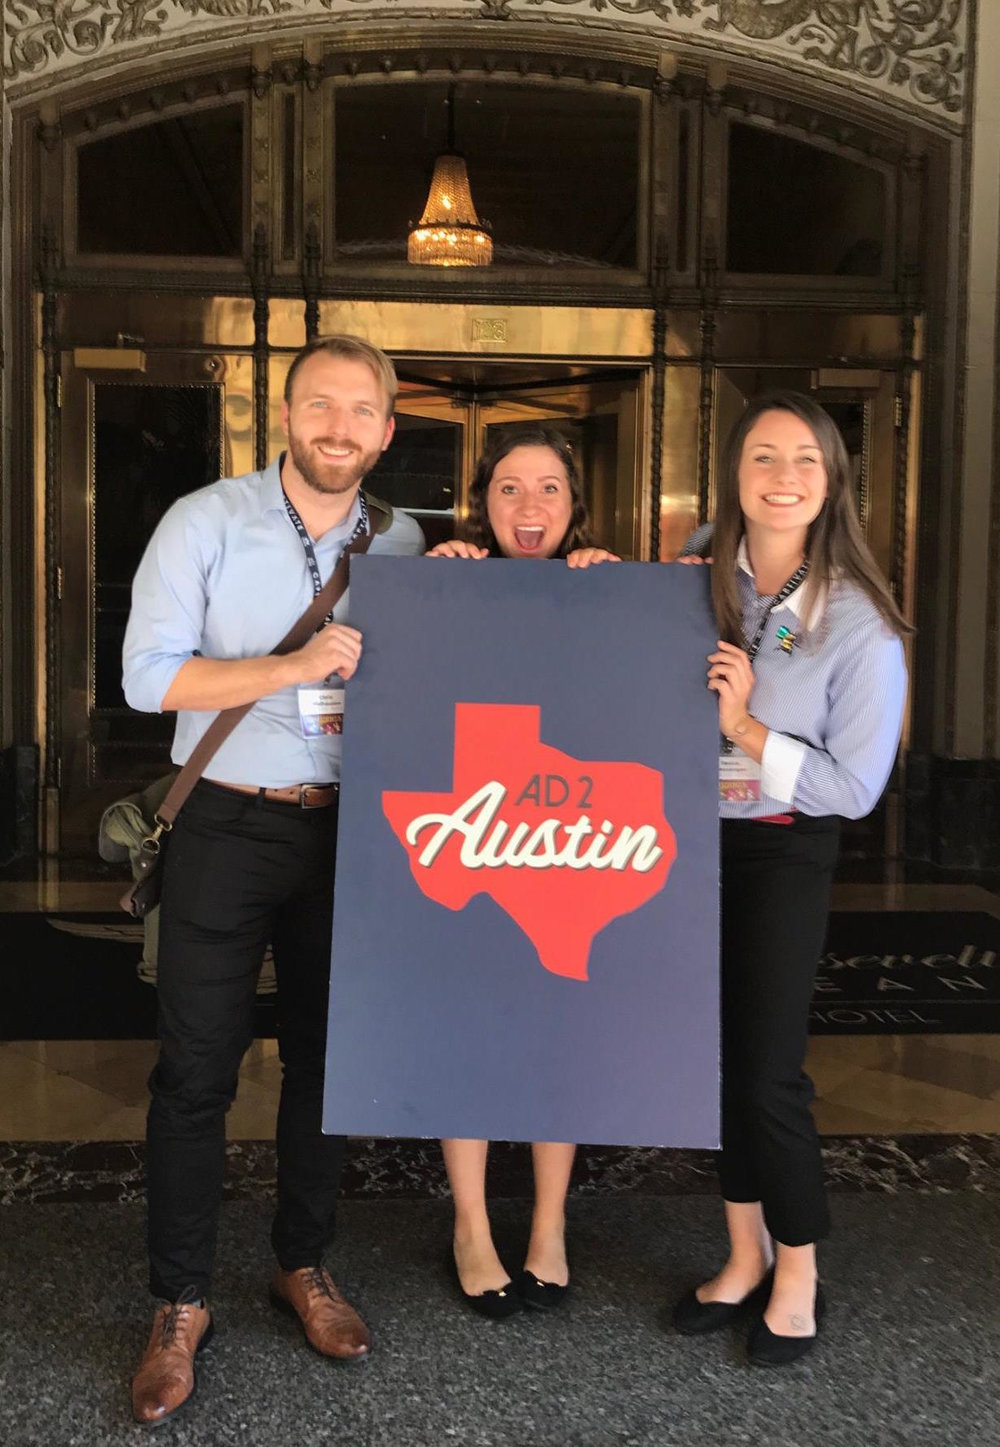 Chris Welhausen, Madison Scullin, and Becca Messenger after presenting Ad 2 Austin's 2016-2017 Public Service Campaign for the Ad 2 National competition at ADMERICA in New Orleans, LA.